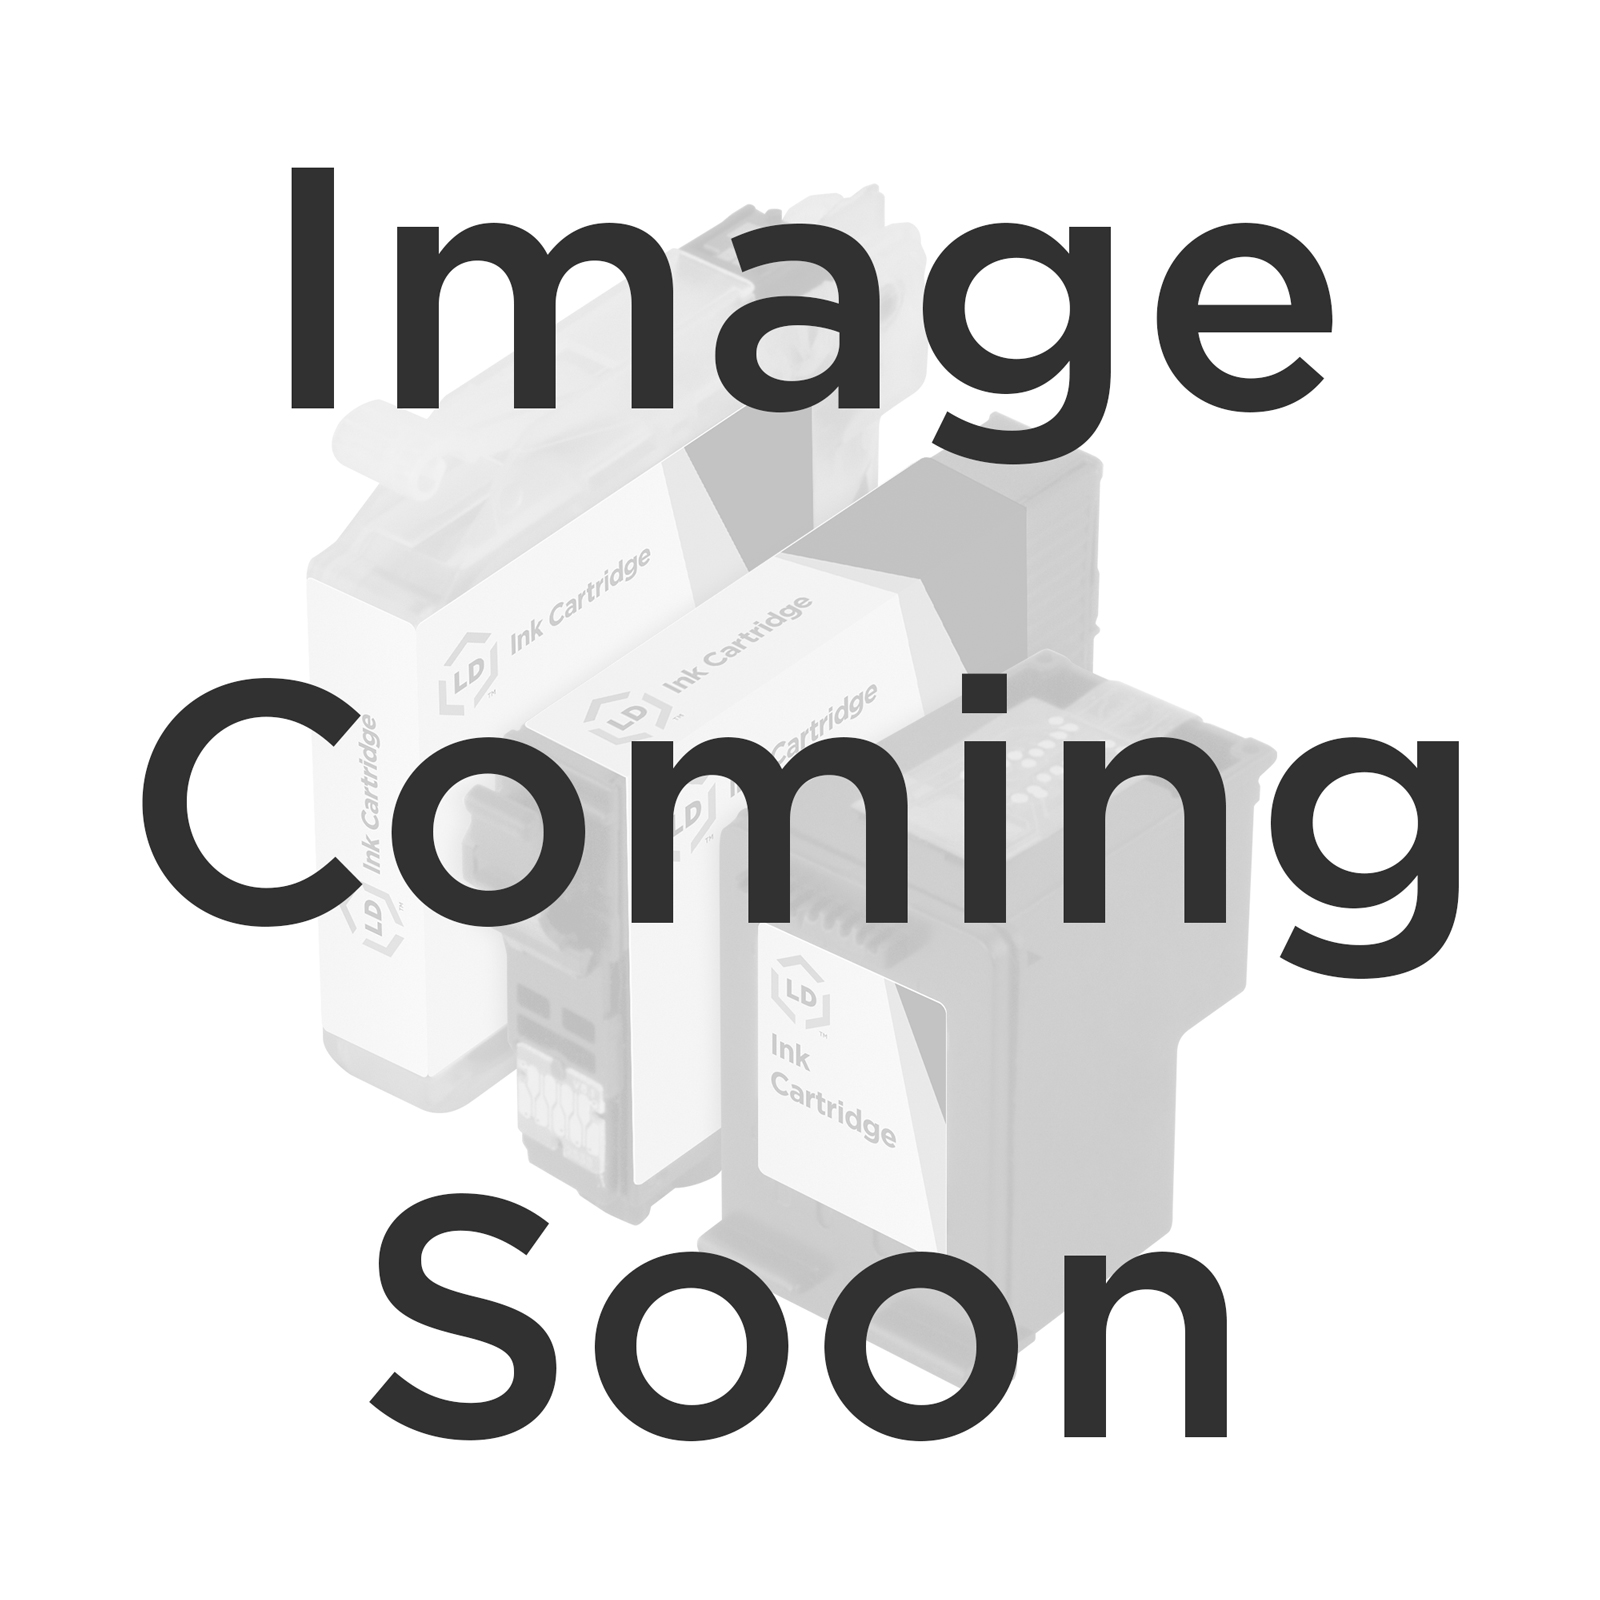 Shell Comprehension and Critical Thinking: Grade 4 Education Printed/Electronic Book by Greathouse Lisa. - English